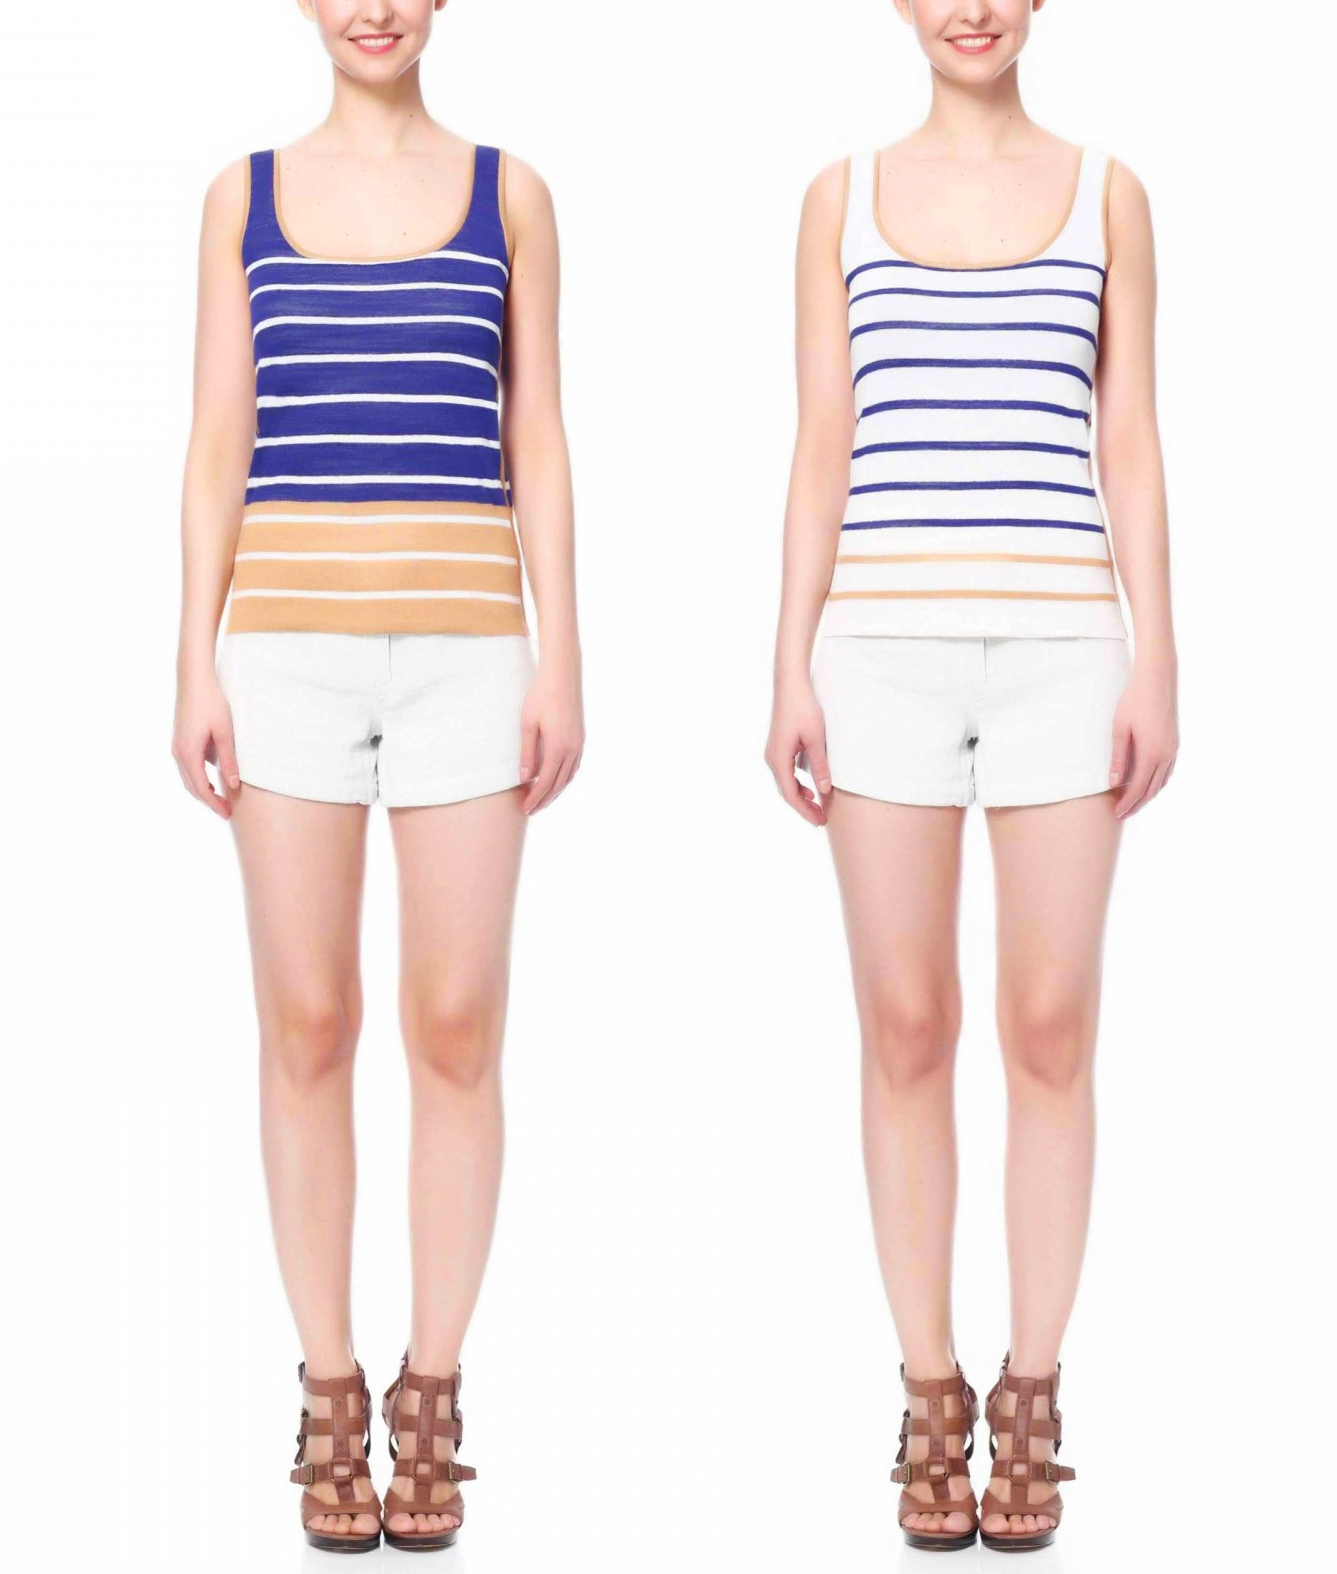 Reversible ABELLE sleeveless shirt from Jia Collection